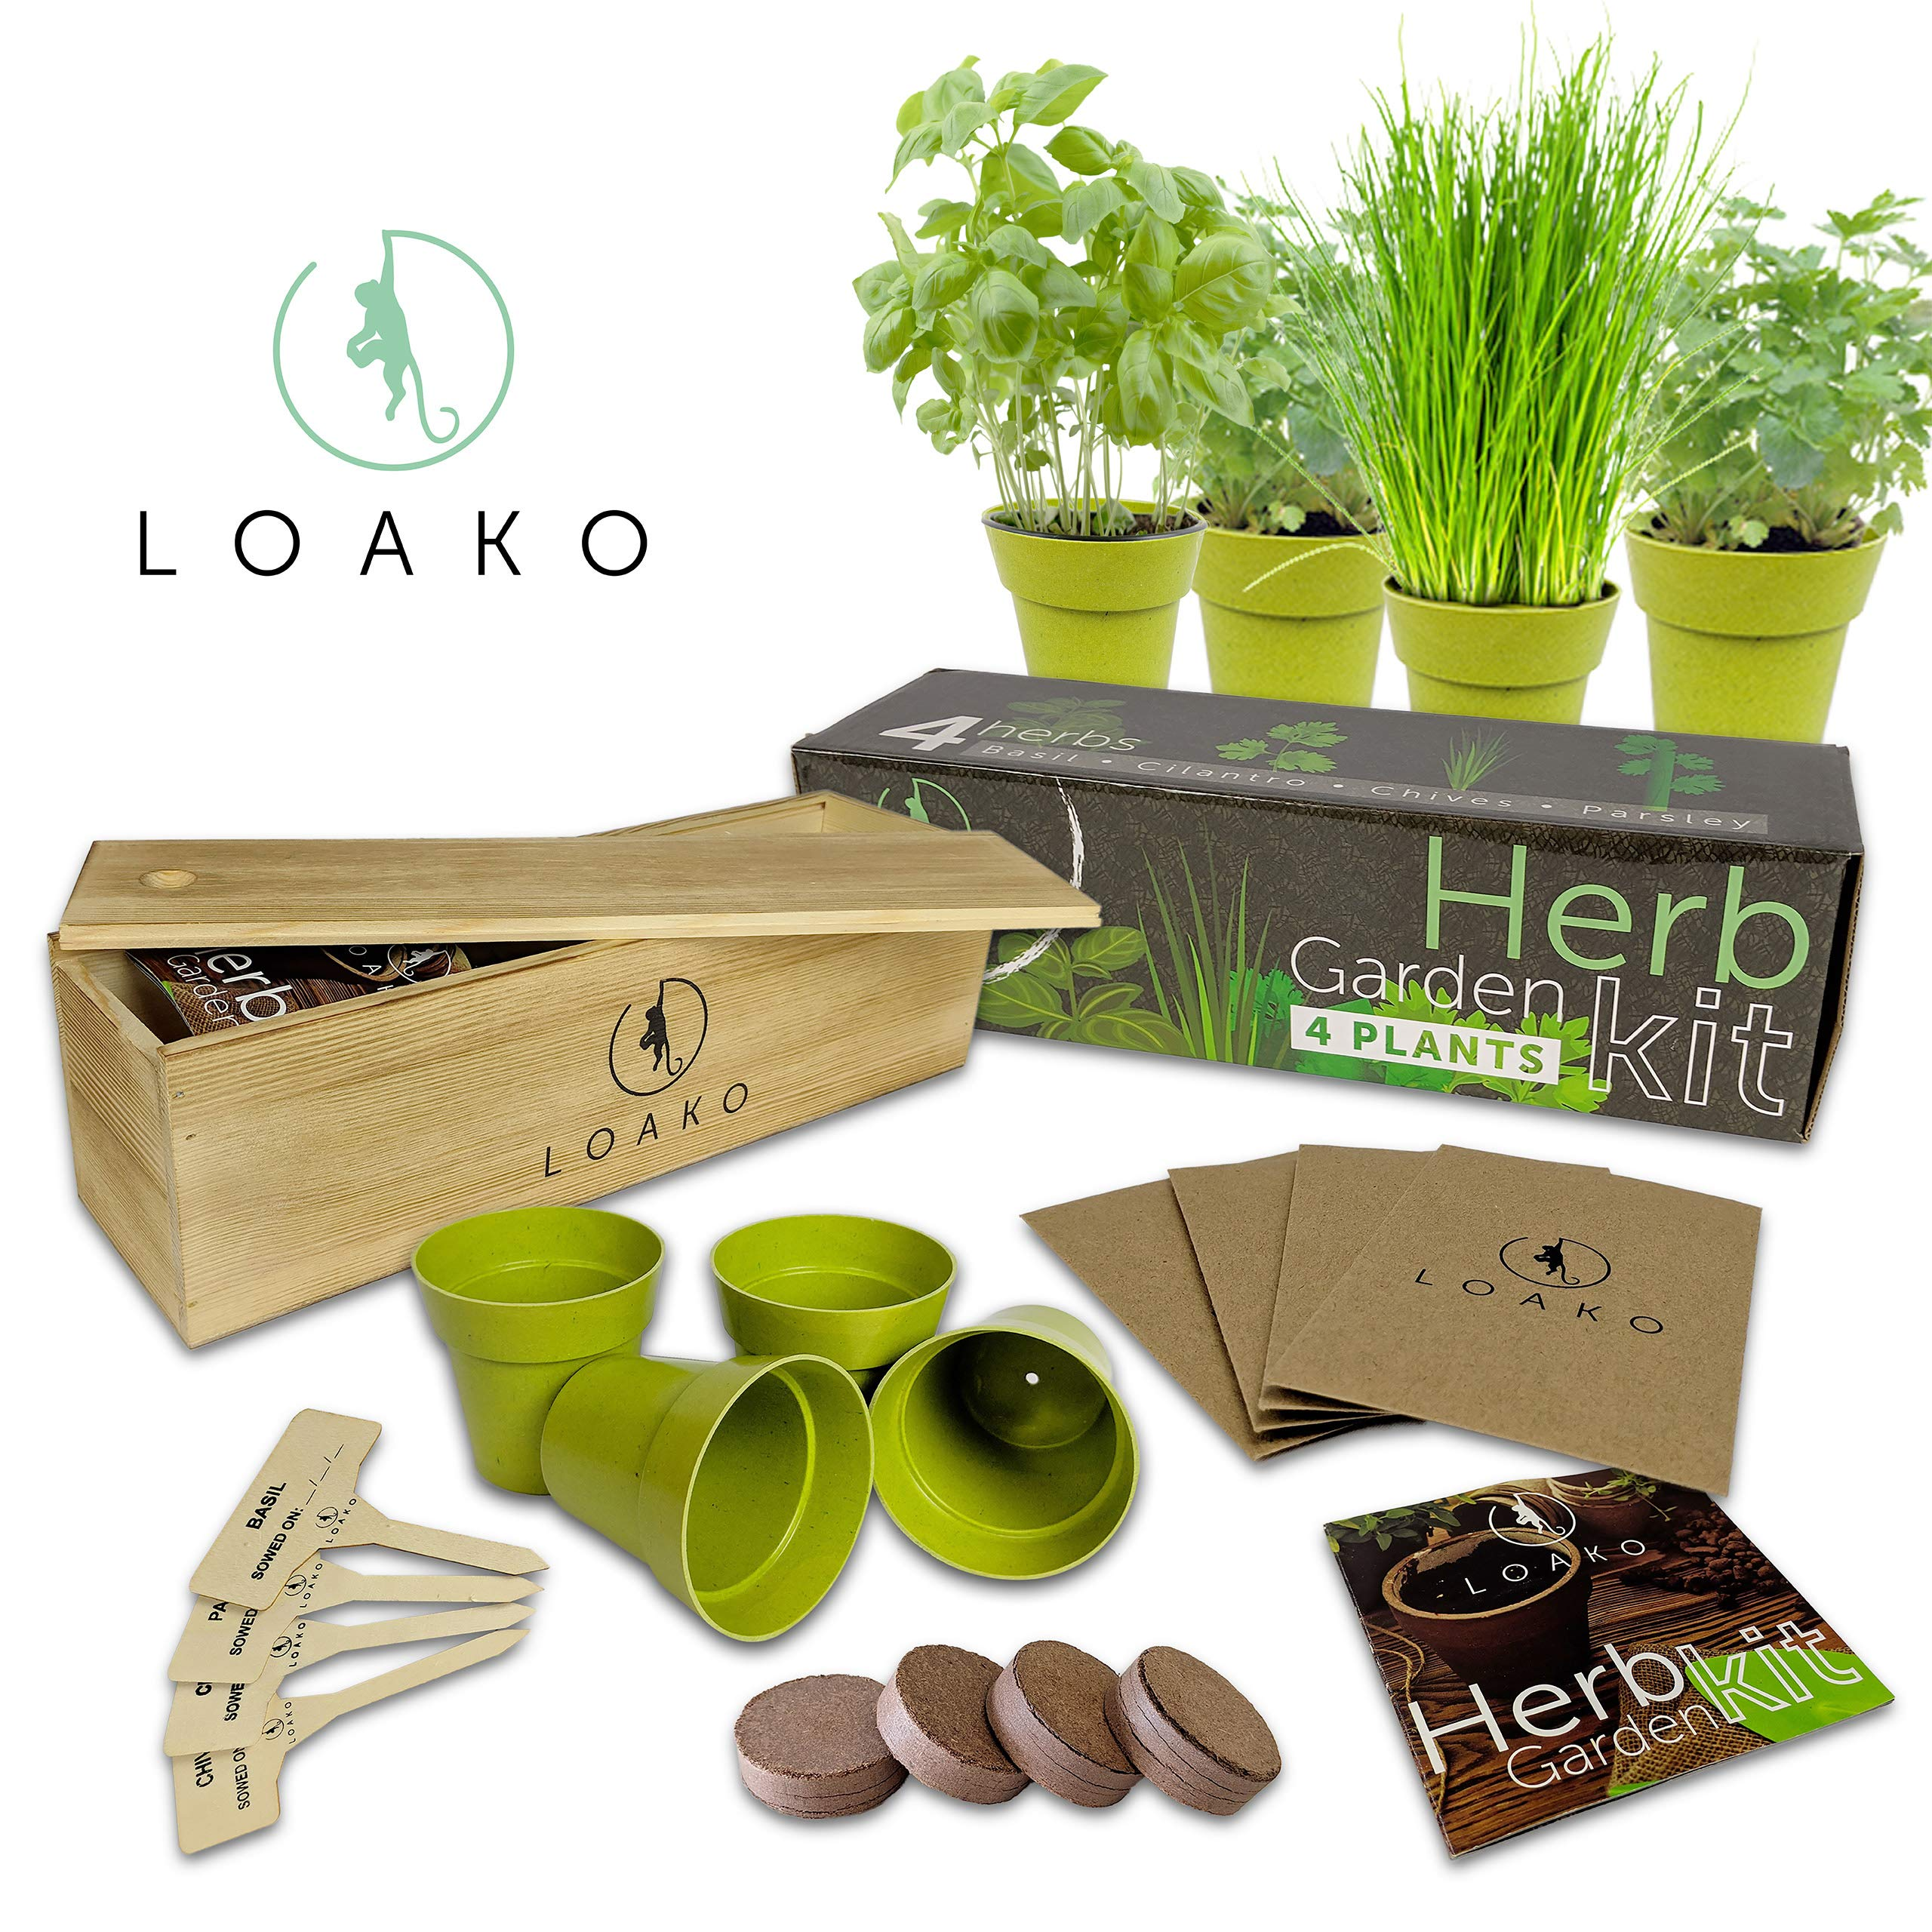 Herb Garden Kit. Includes Pots, Seeds, Soil Pellets, Markers, Instructions Booklet. Basil, Parsley, Cilantro, Chives. Great Gift Idea. Very Easy to Grow by Loako (Image #1)